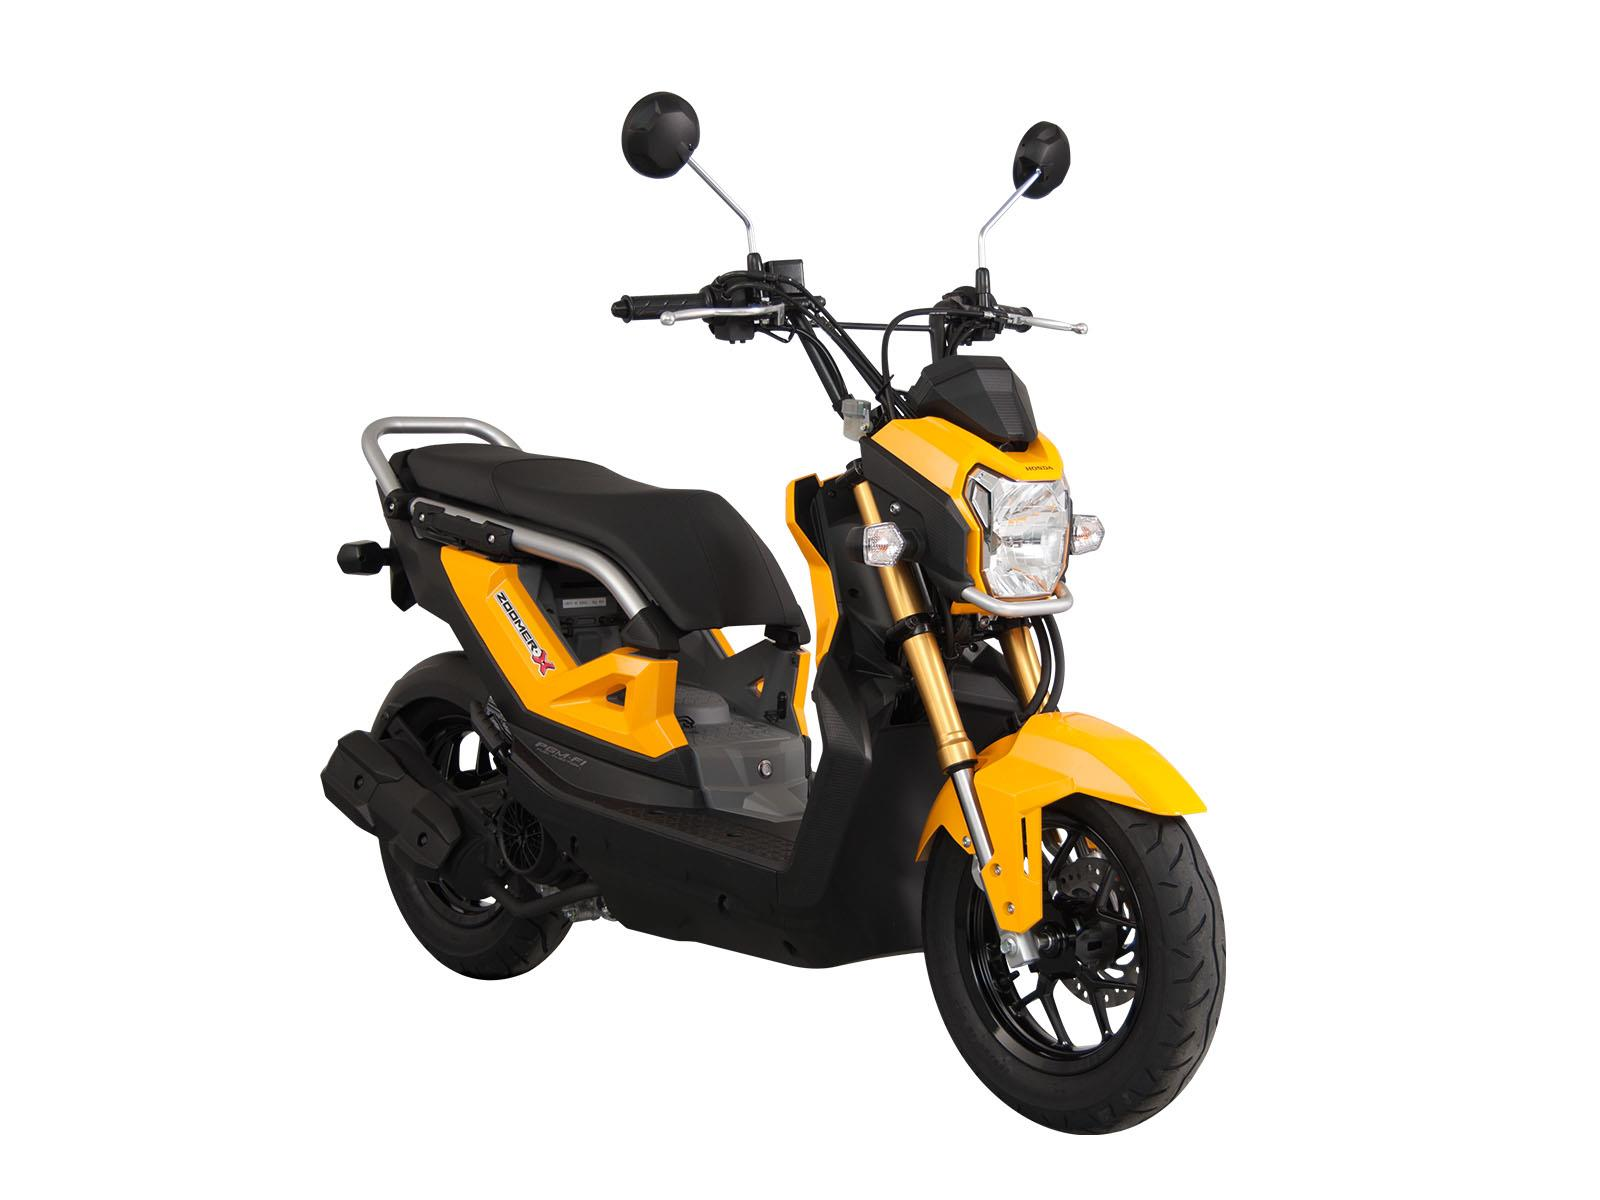 Image Result For Honda Motorcycles Zoomer